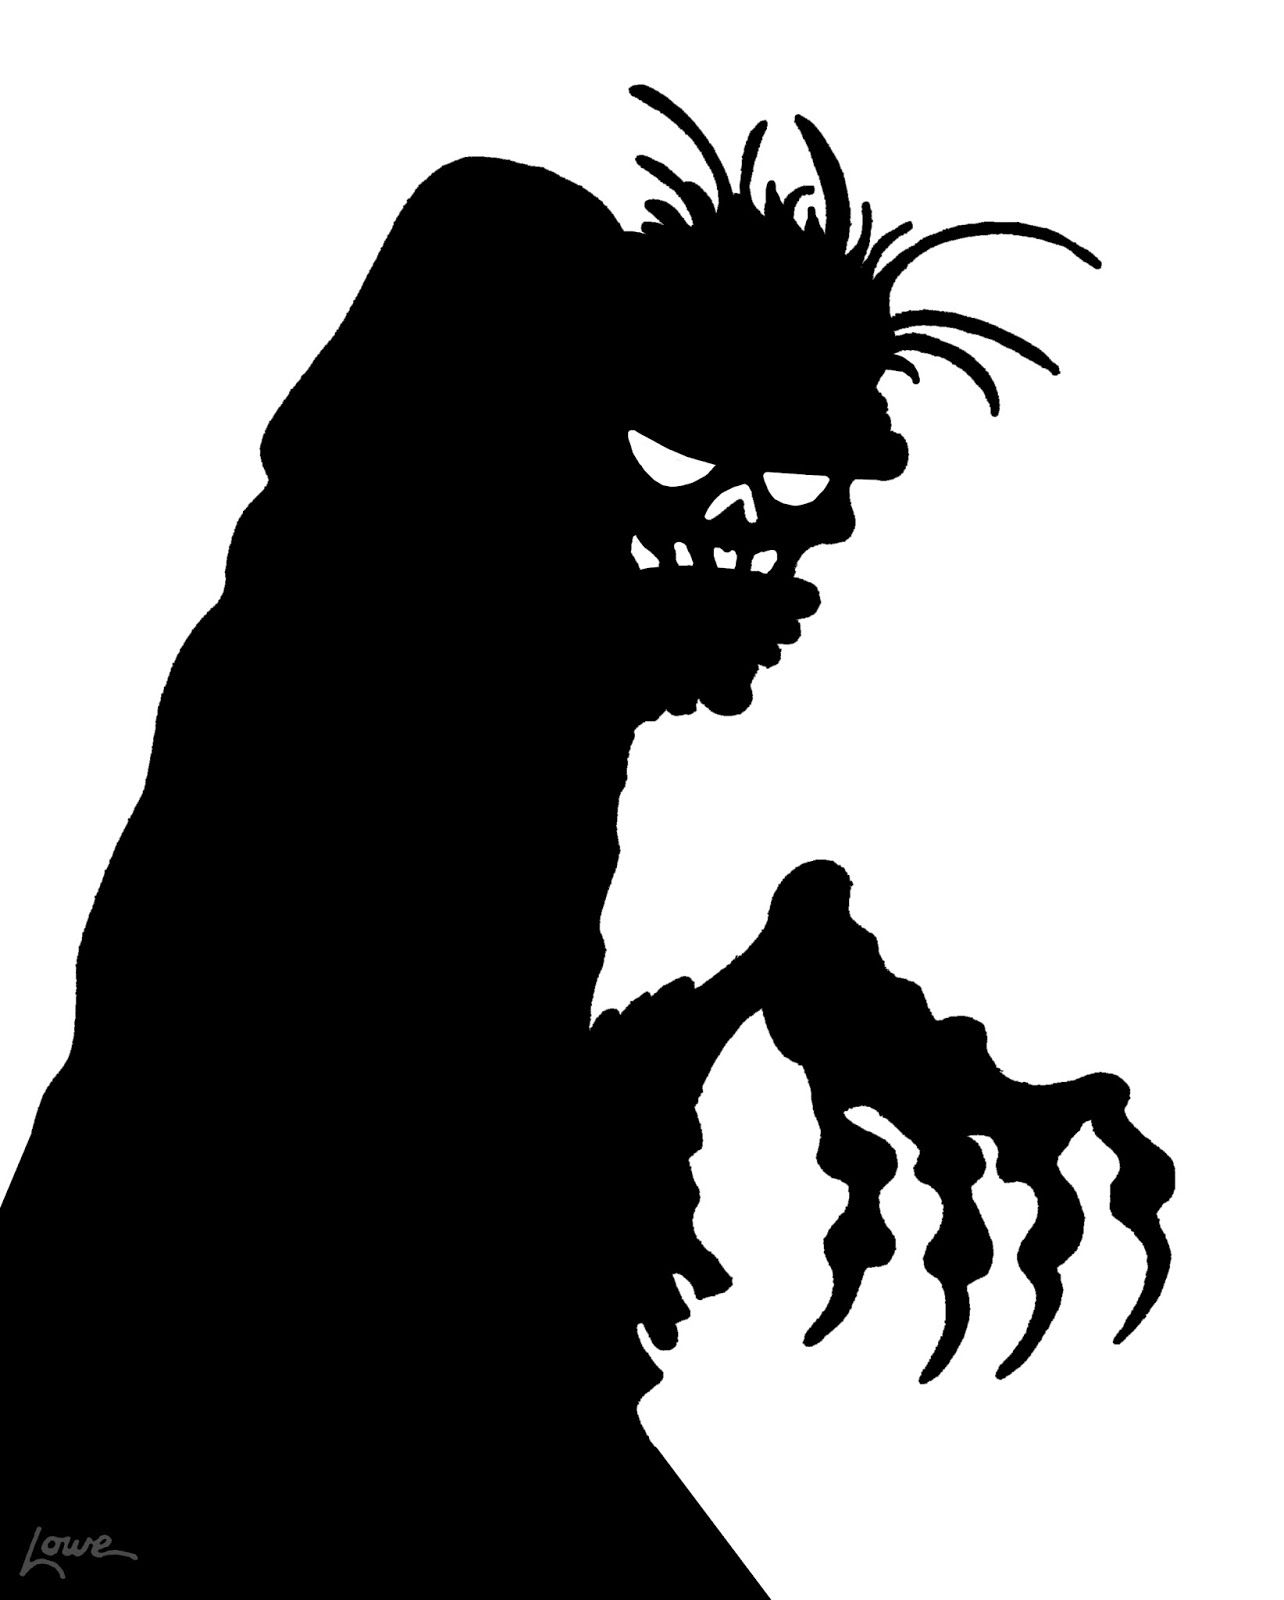 dave lowe design the blog 63 days til halloween zombie window silhouette printables - Halloween Decoration Templates